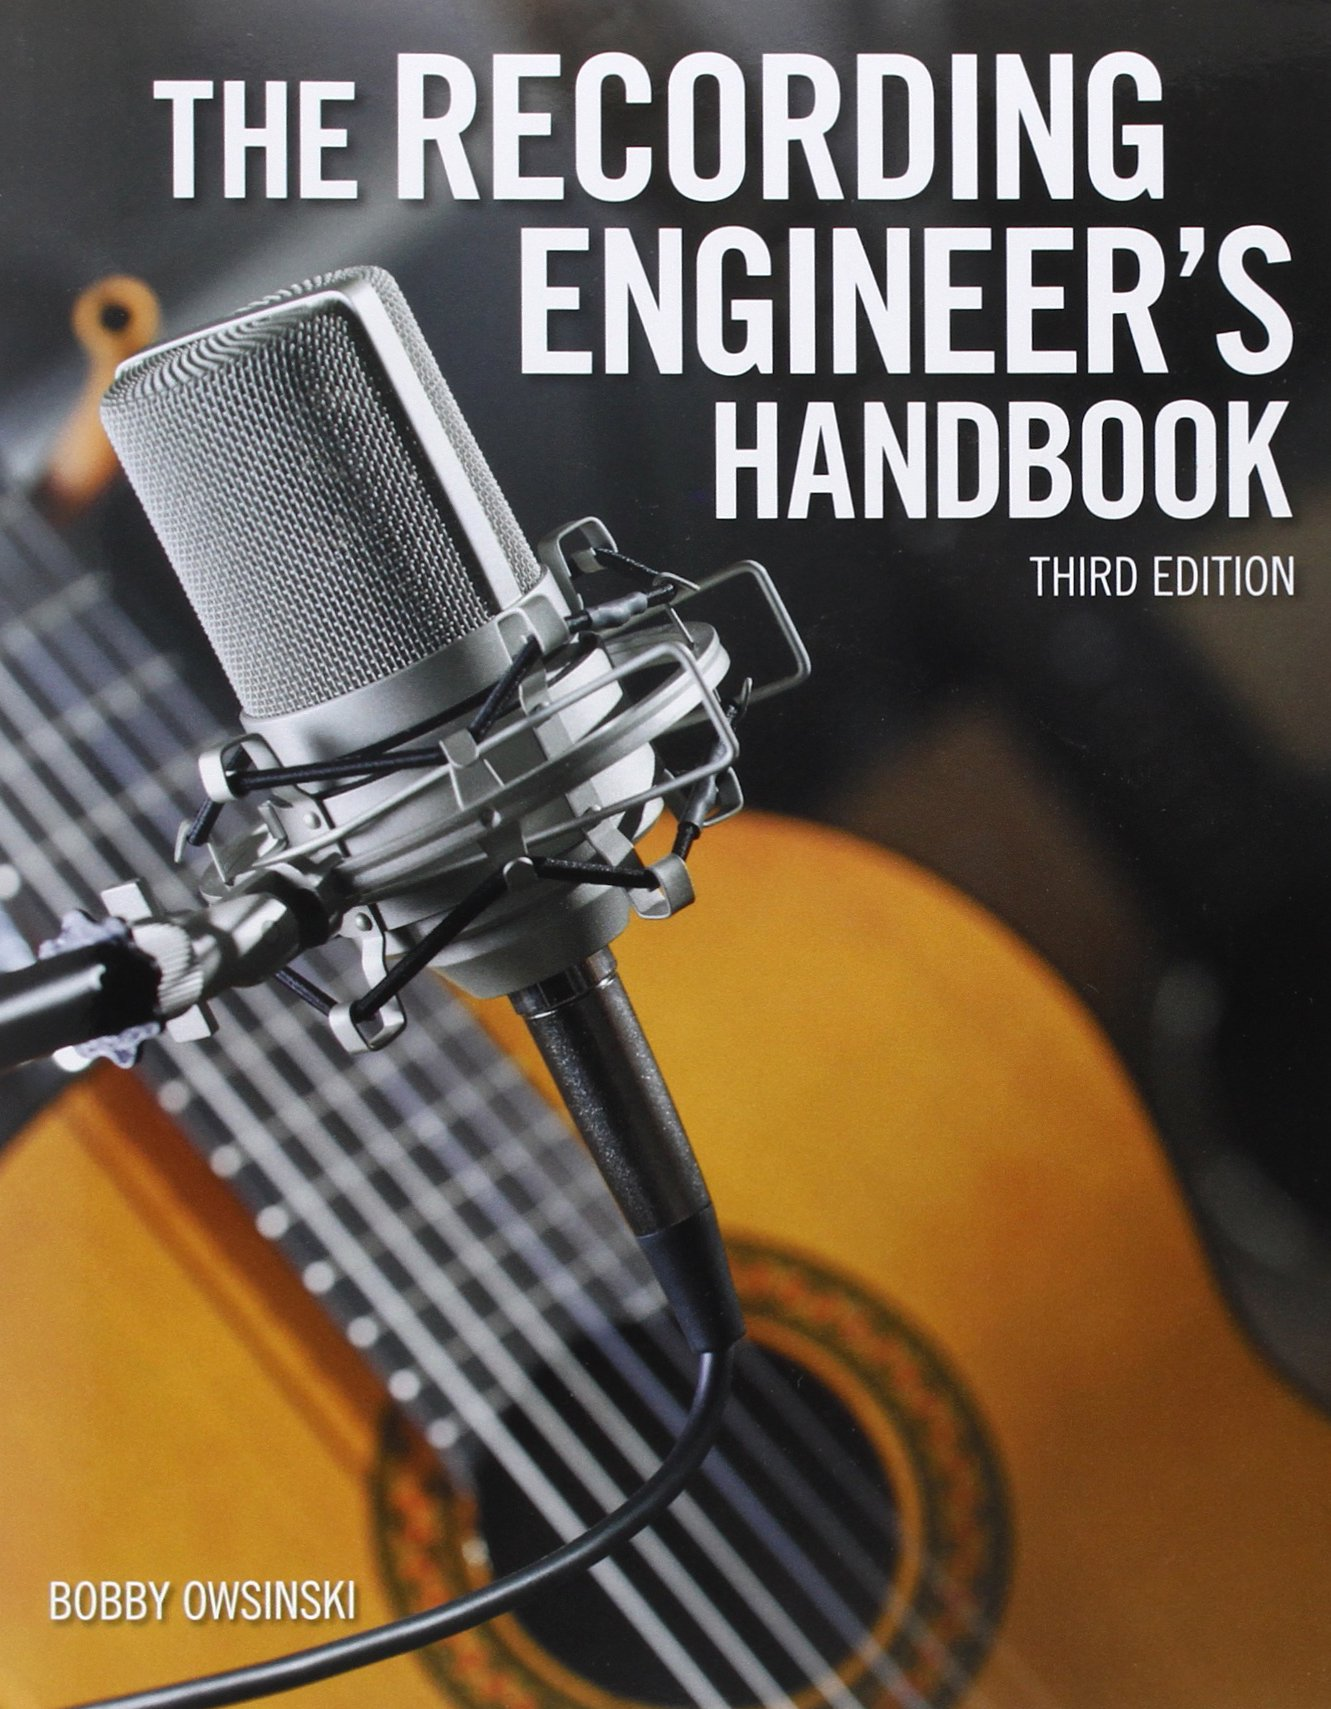 The Recording Engineer's Handbook - Bobby Owsinski